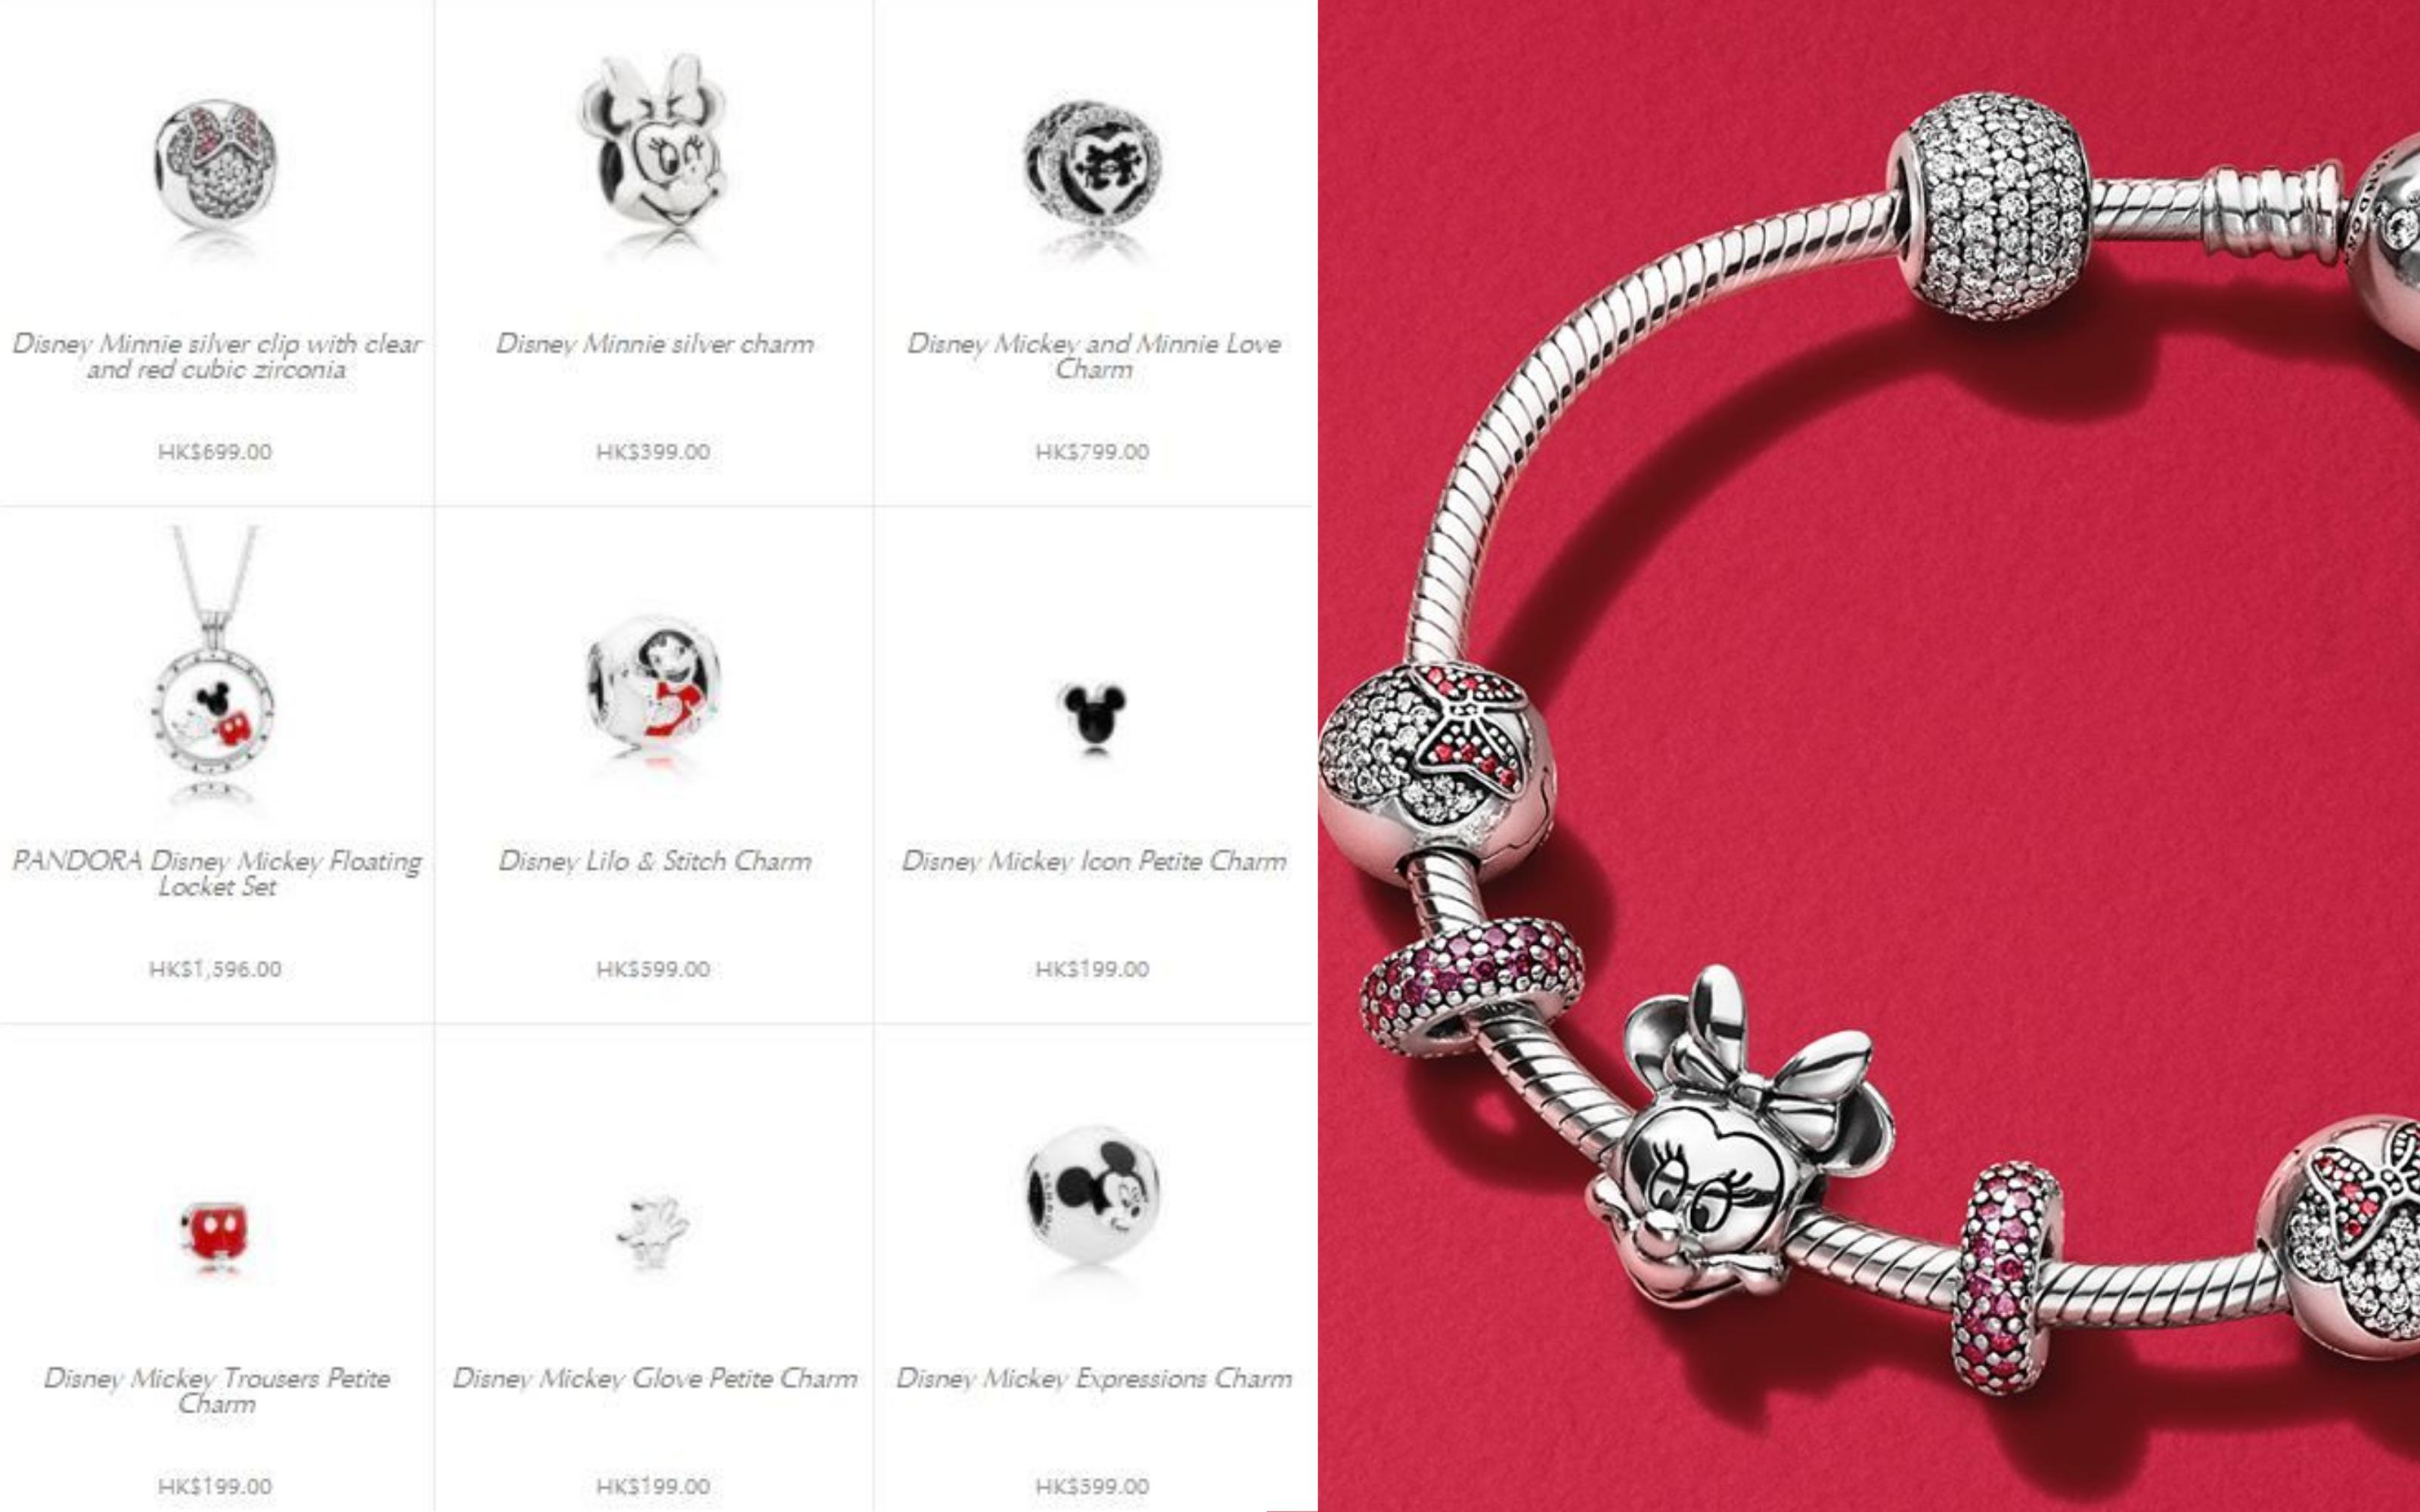 More Disney charms can be found at hk.pandora.net.